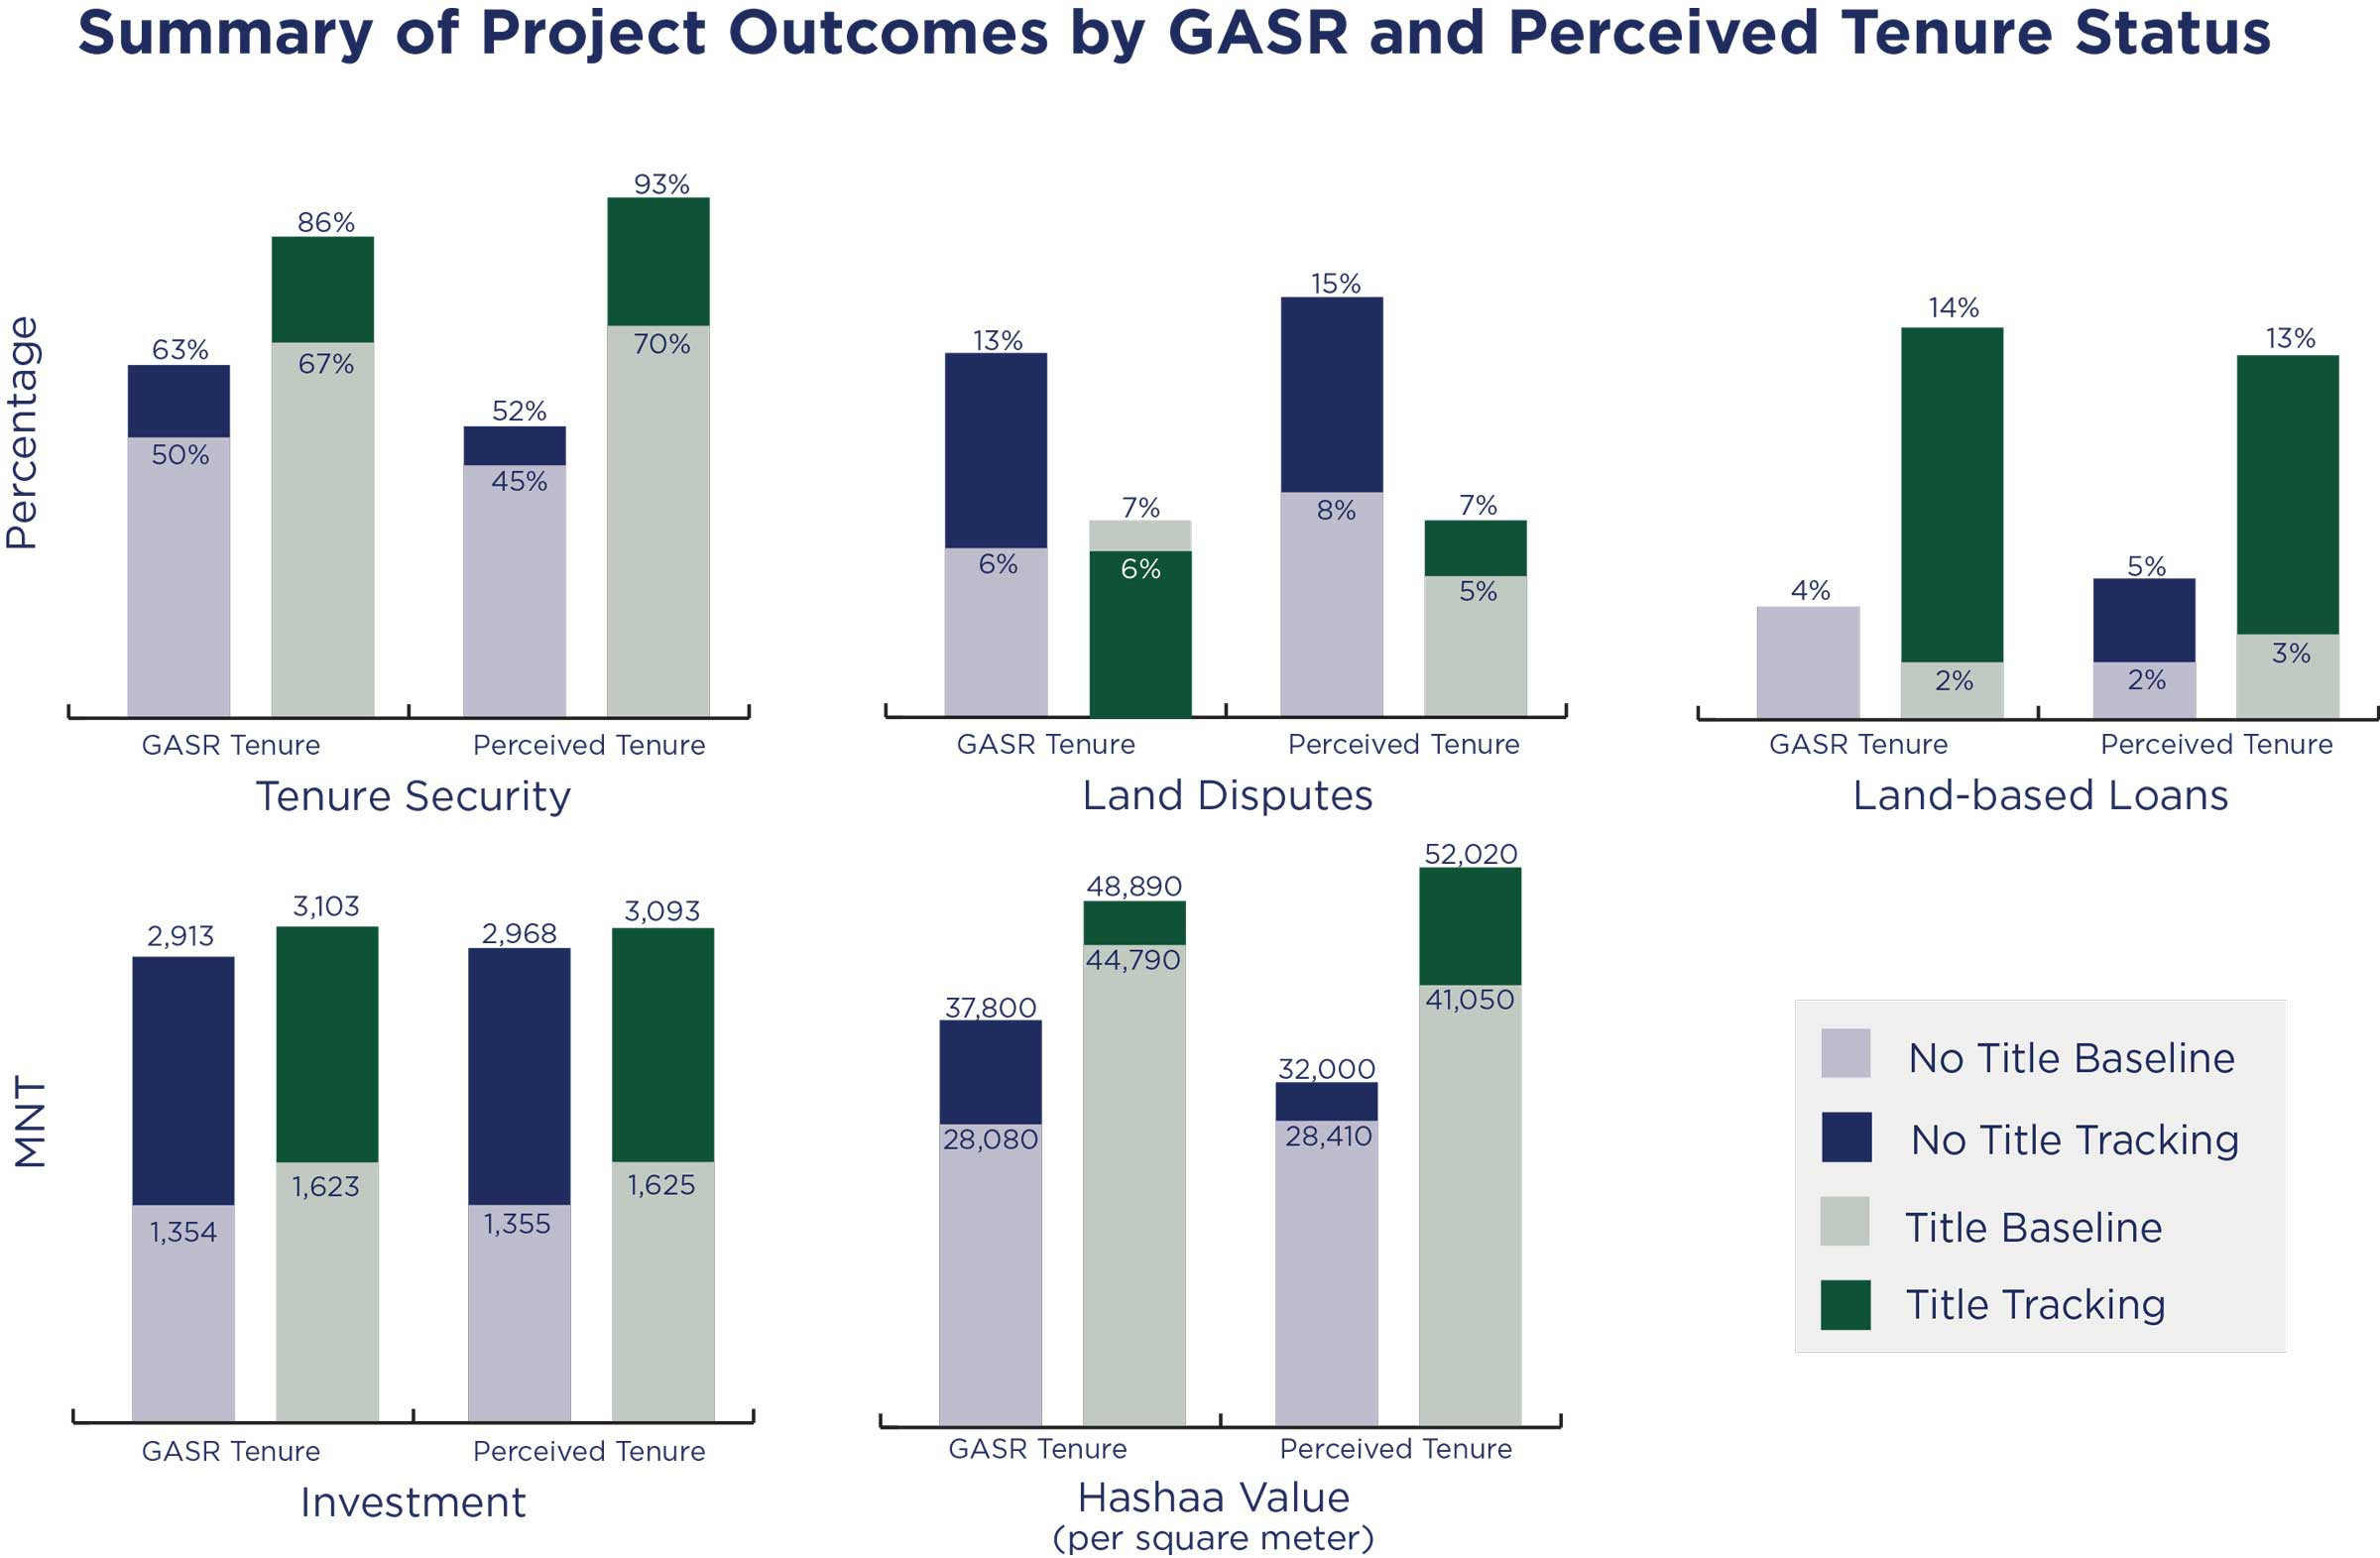 Summary of Project Outcomes by GASR and Perceived Tenure Status comparison charts